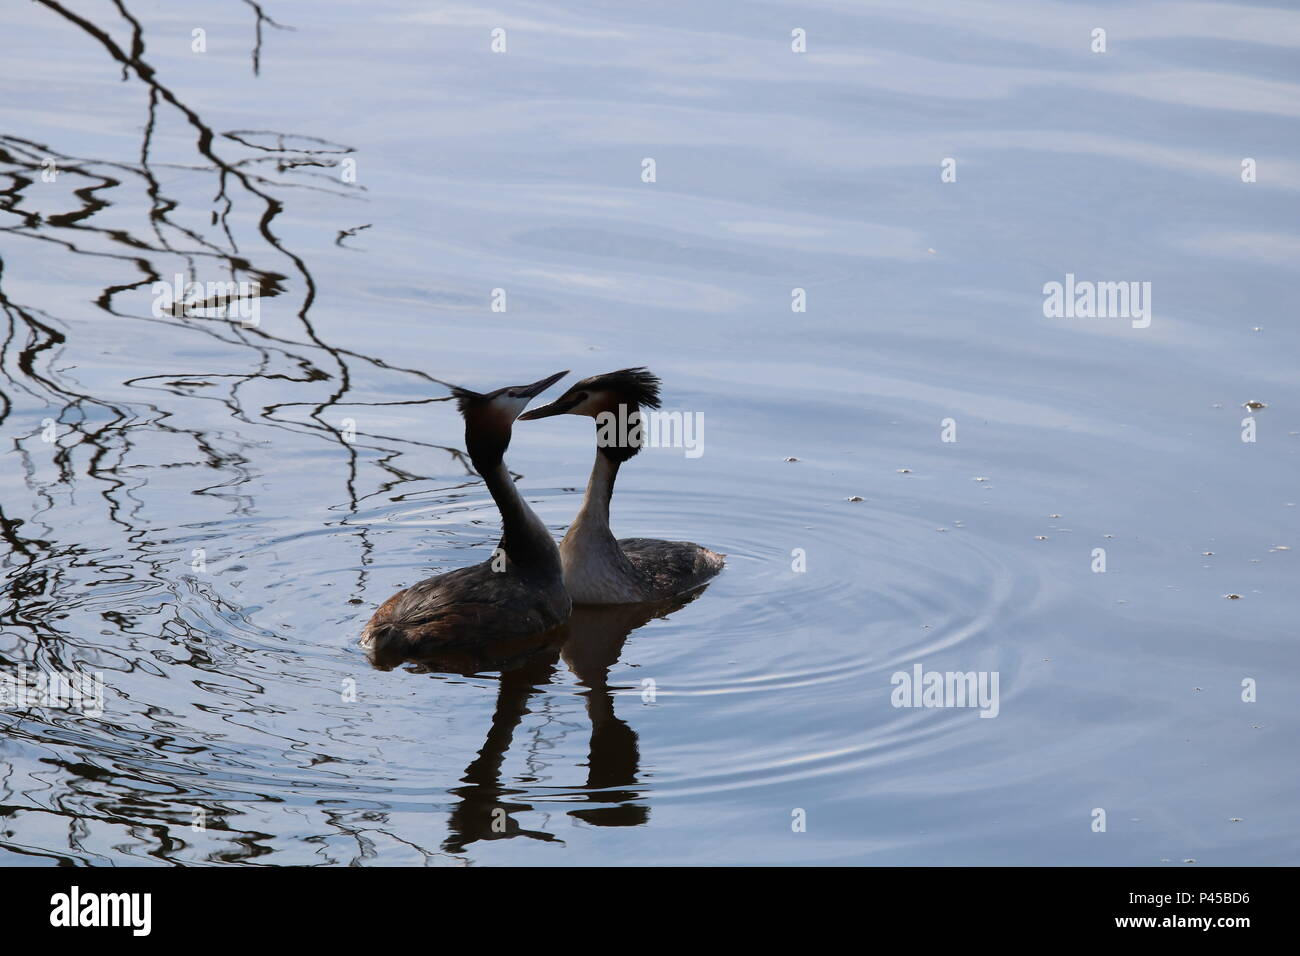 Great Crested Grebes (Podiceps cristatus), North West England, UK - Stock Image